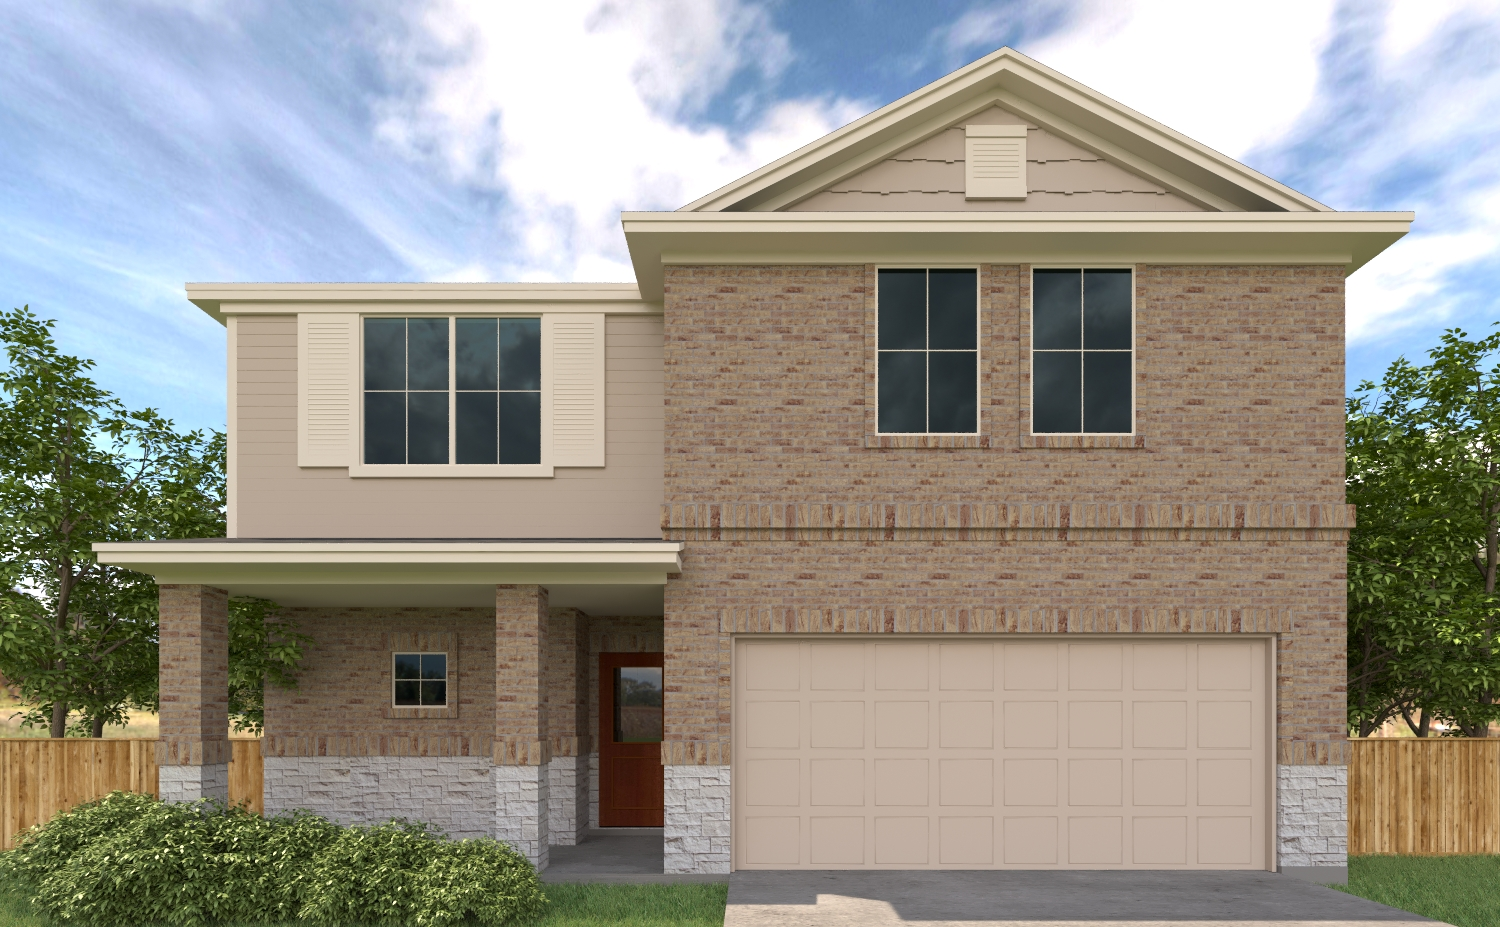 New Home for sale in Parkside.jpg